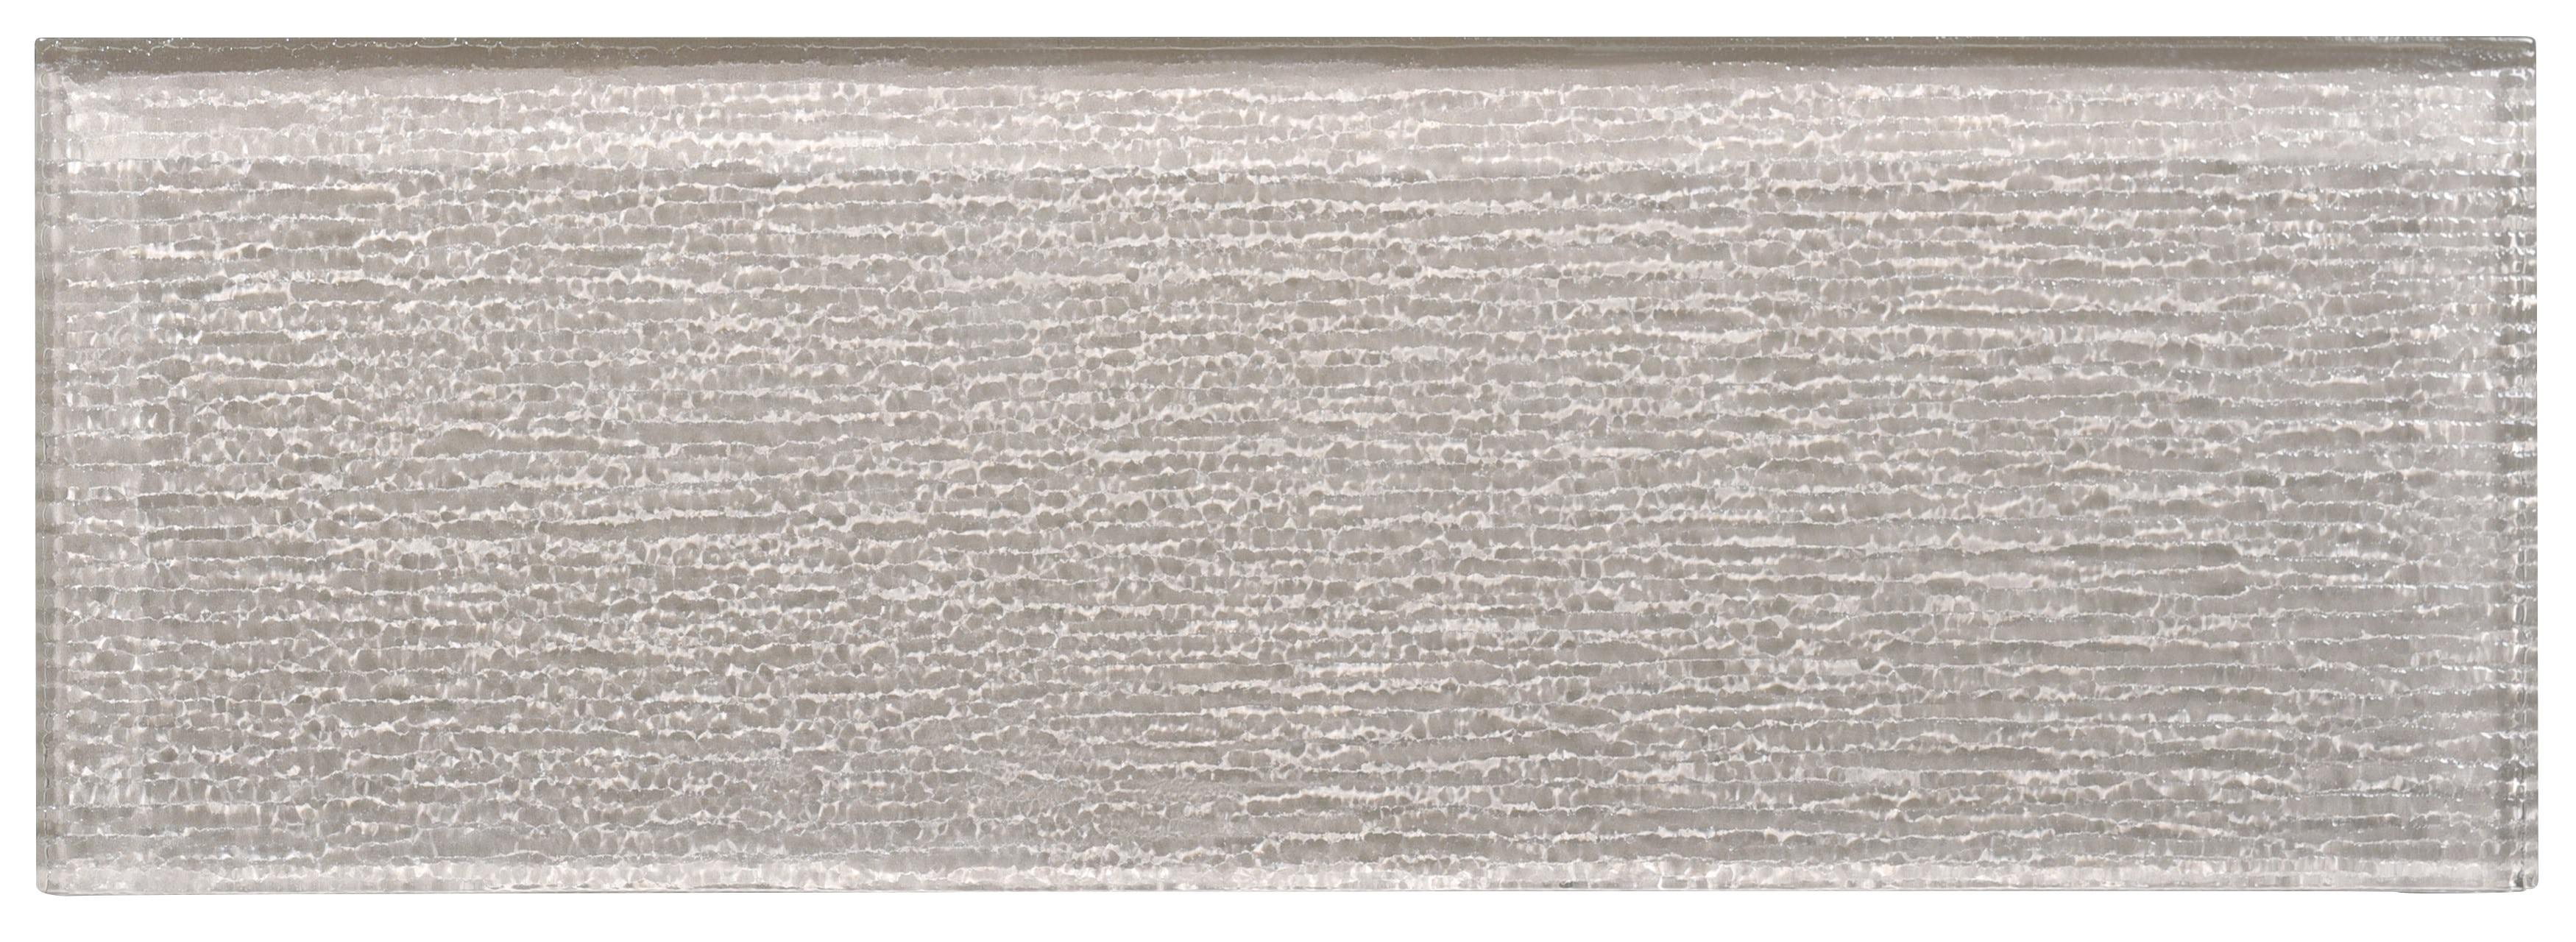 """Glass Subway Tile / 4 x 12 x 0.31 inches / Glossy Textured Individual 4"""" X 12"""" Glass Subway Tile In Icy Gray 0"""